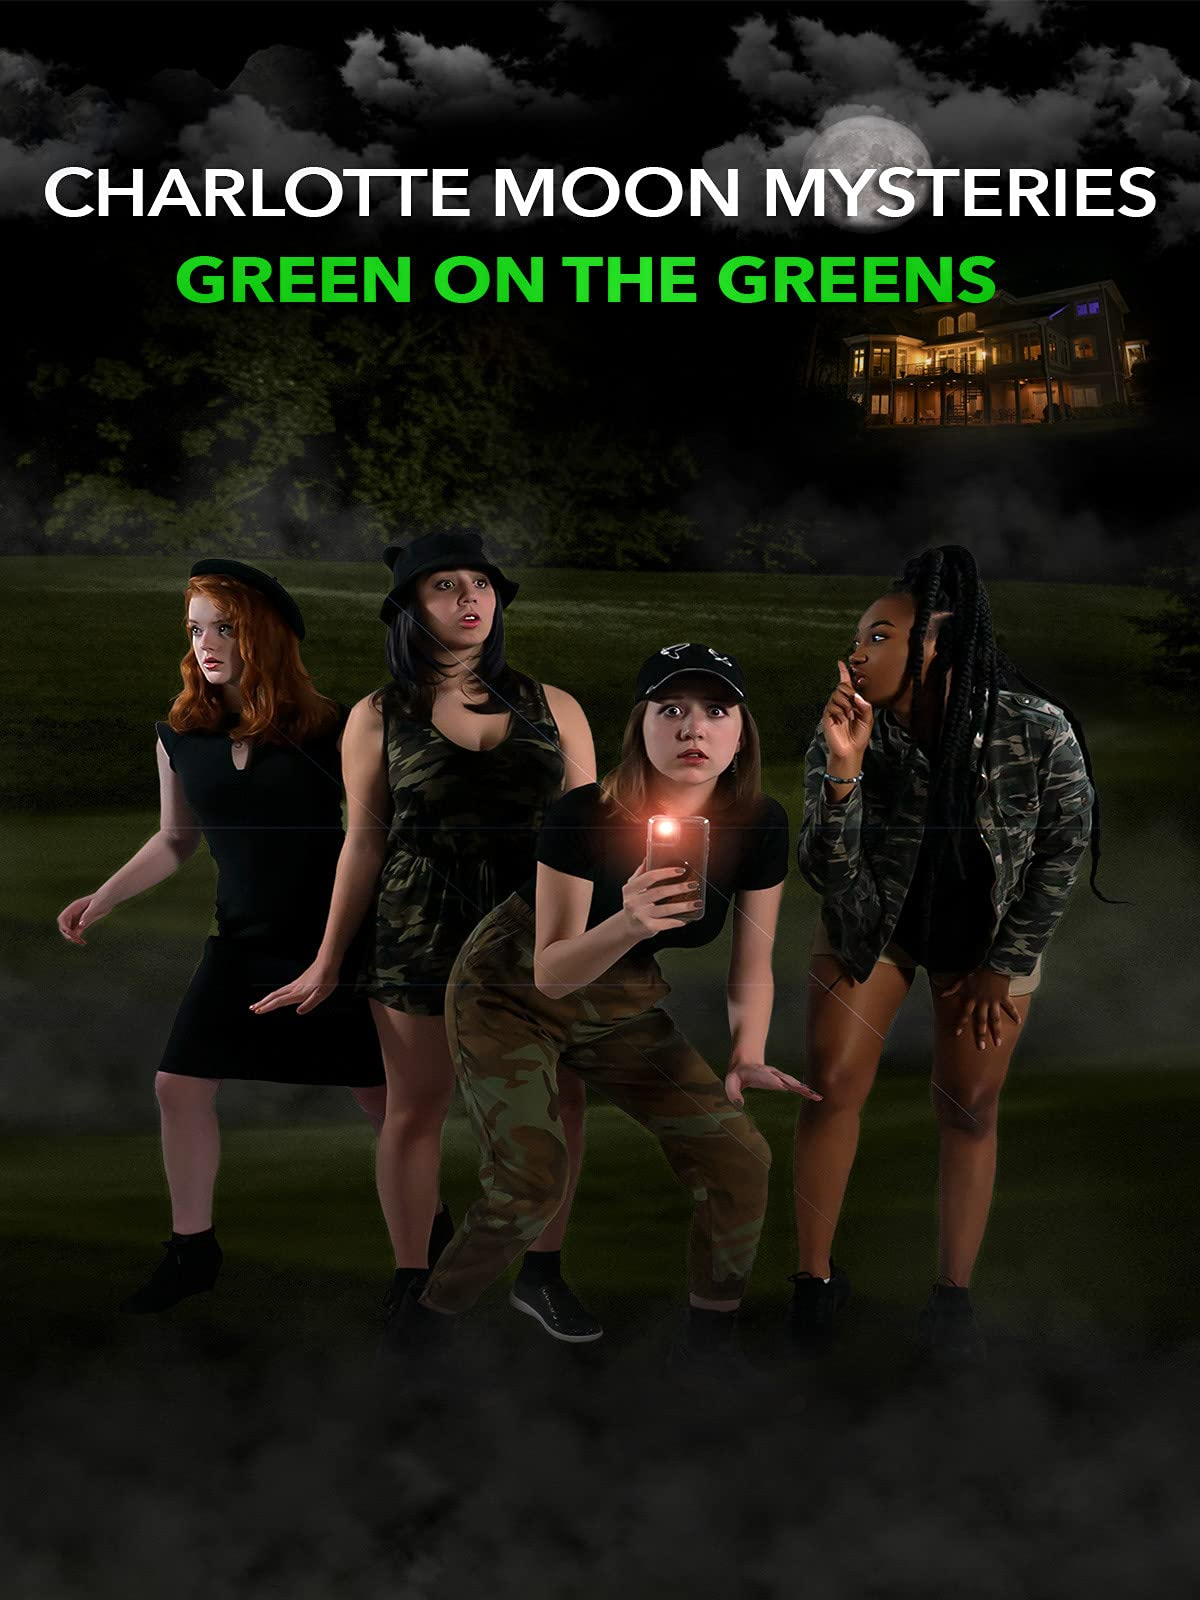 Charlotte Moon Mysteries - Green on the Greens